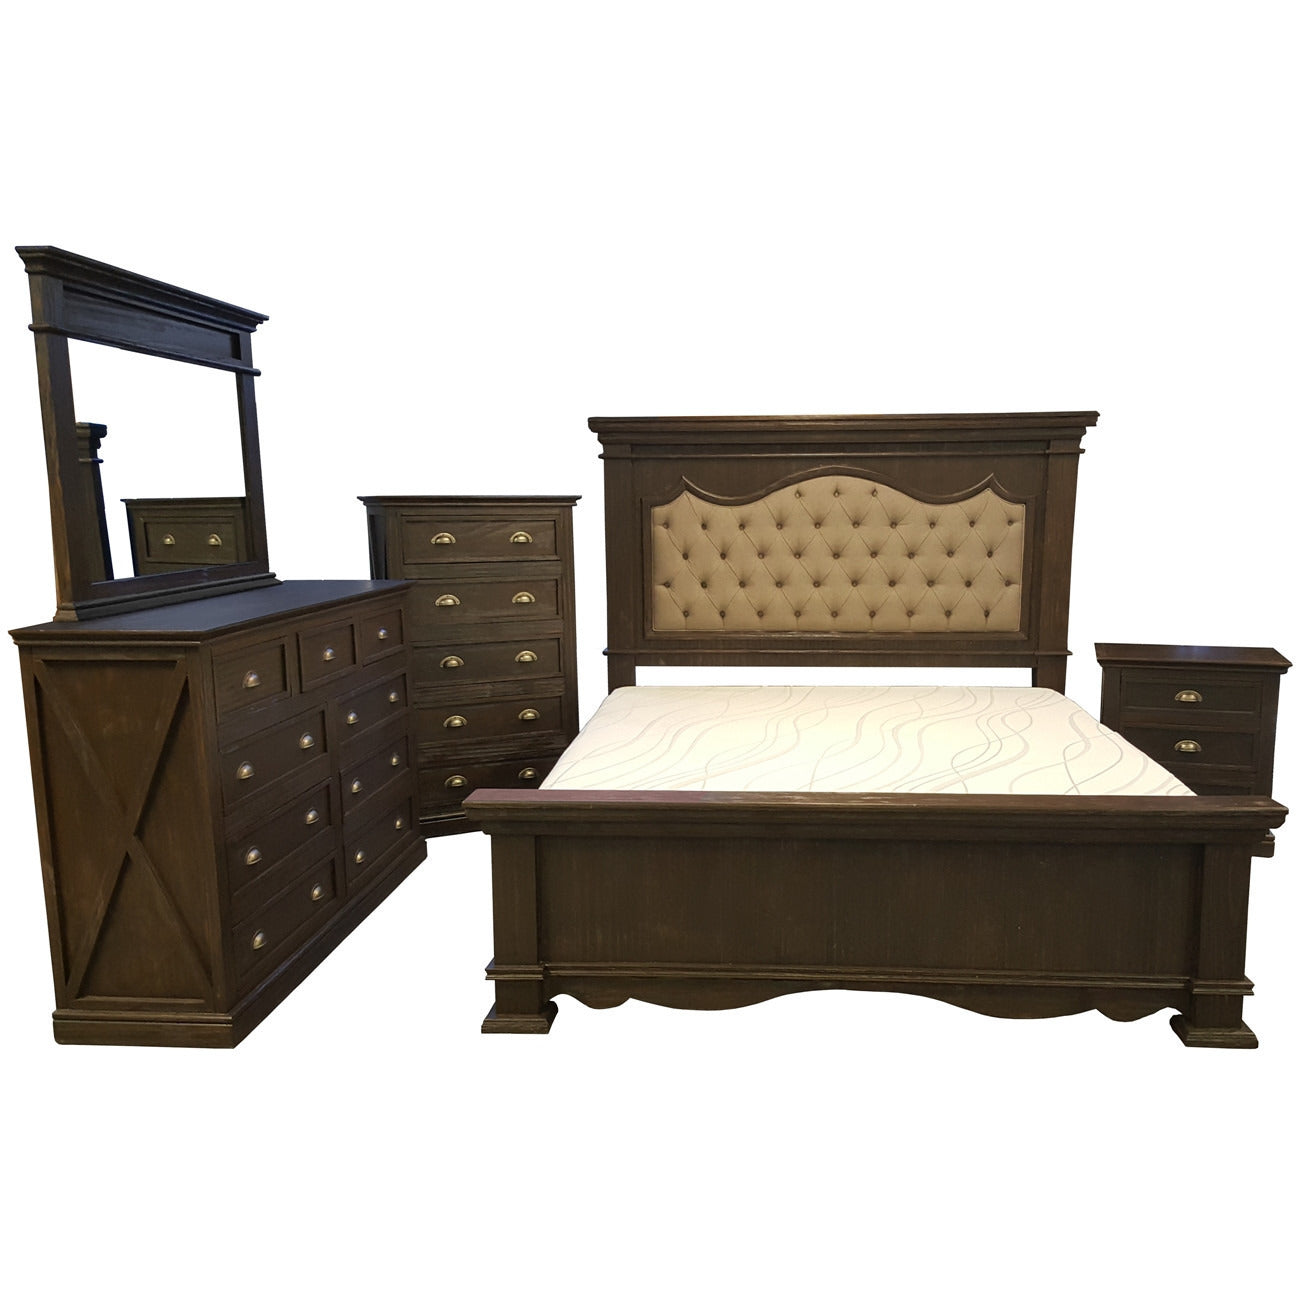 Buy Fifth Avenue Rustic Bedroom Collection at SmithampMyers